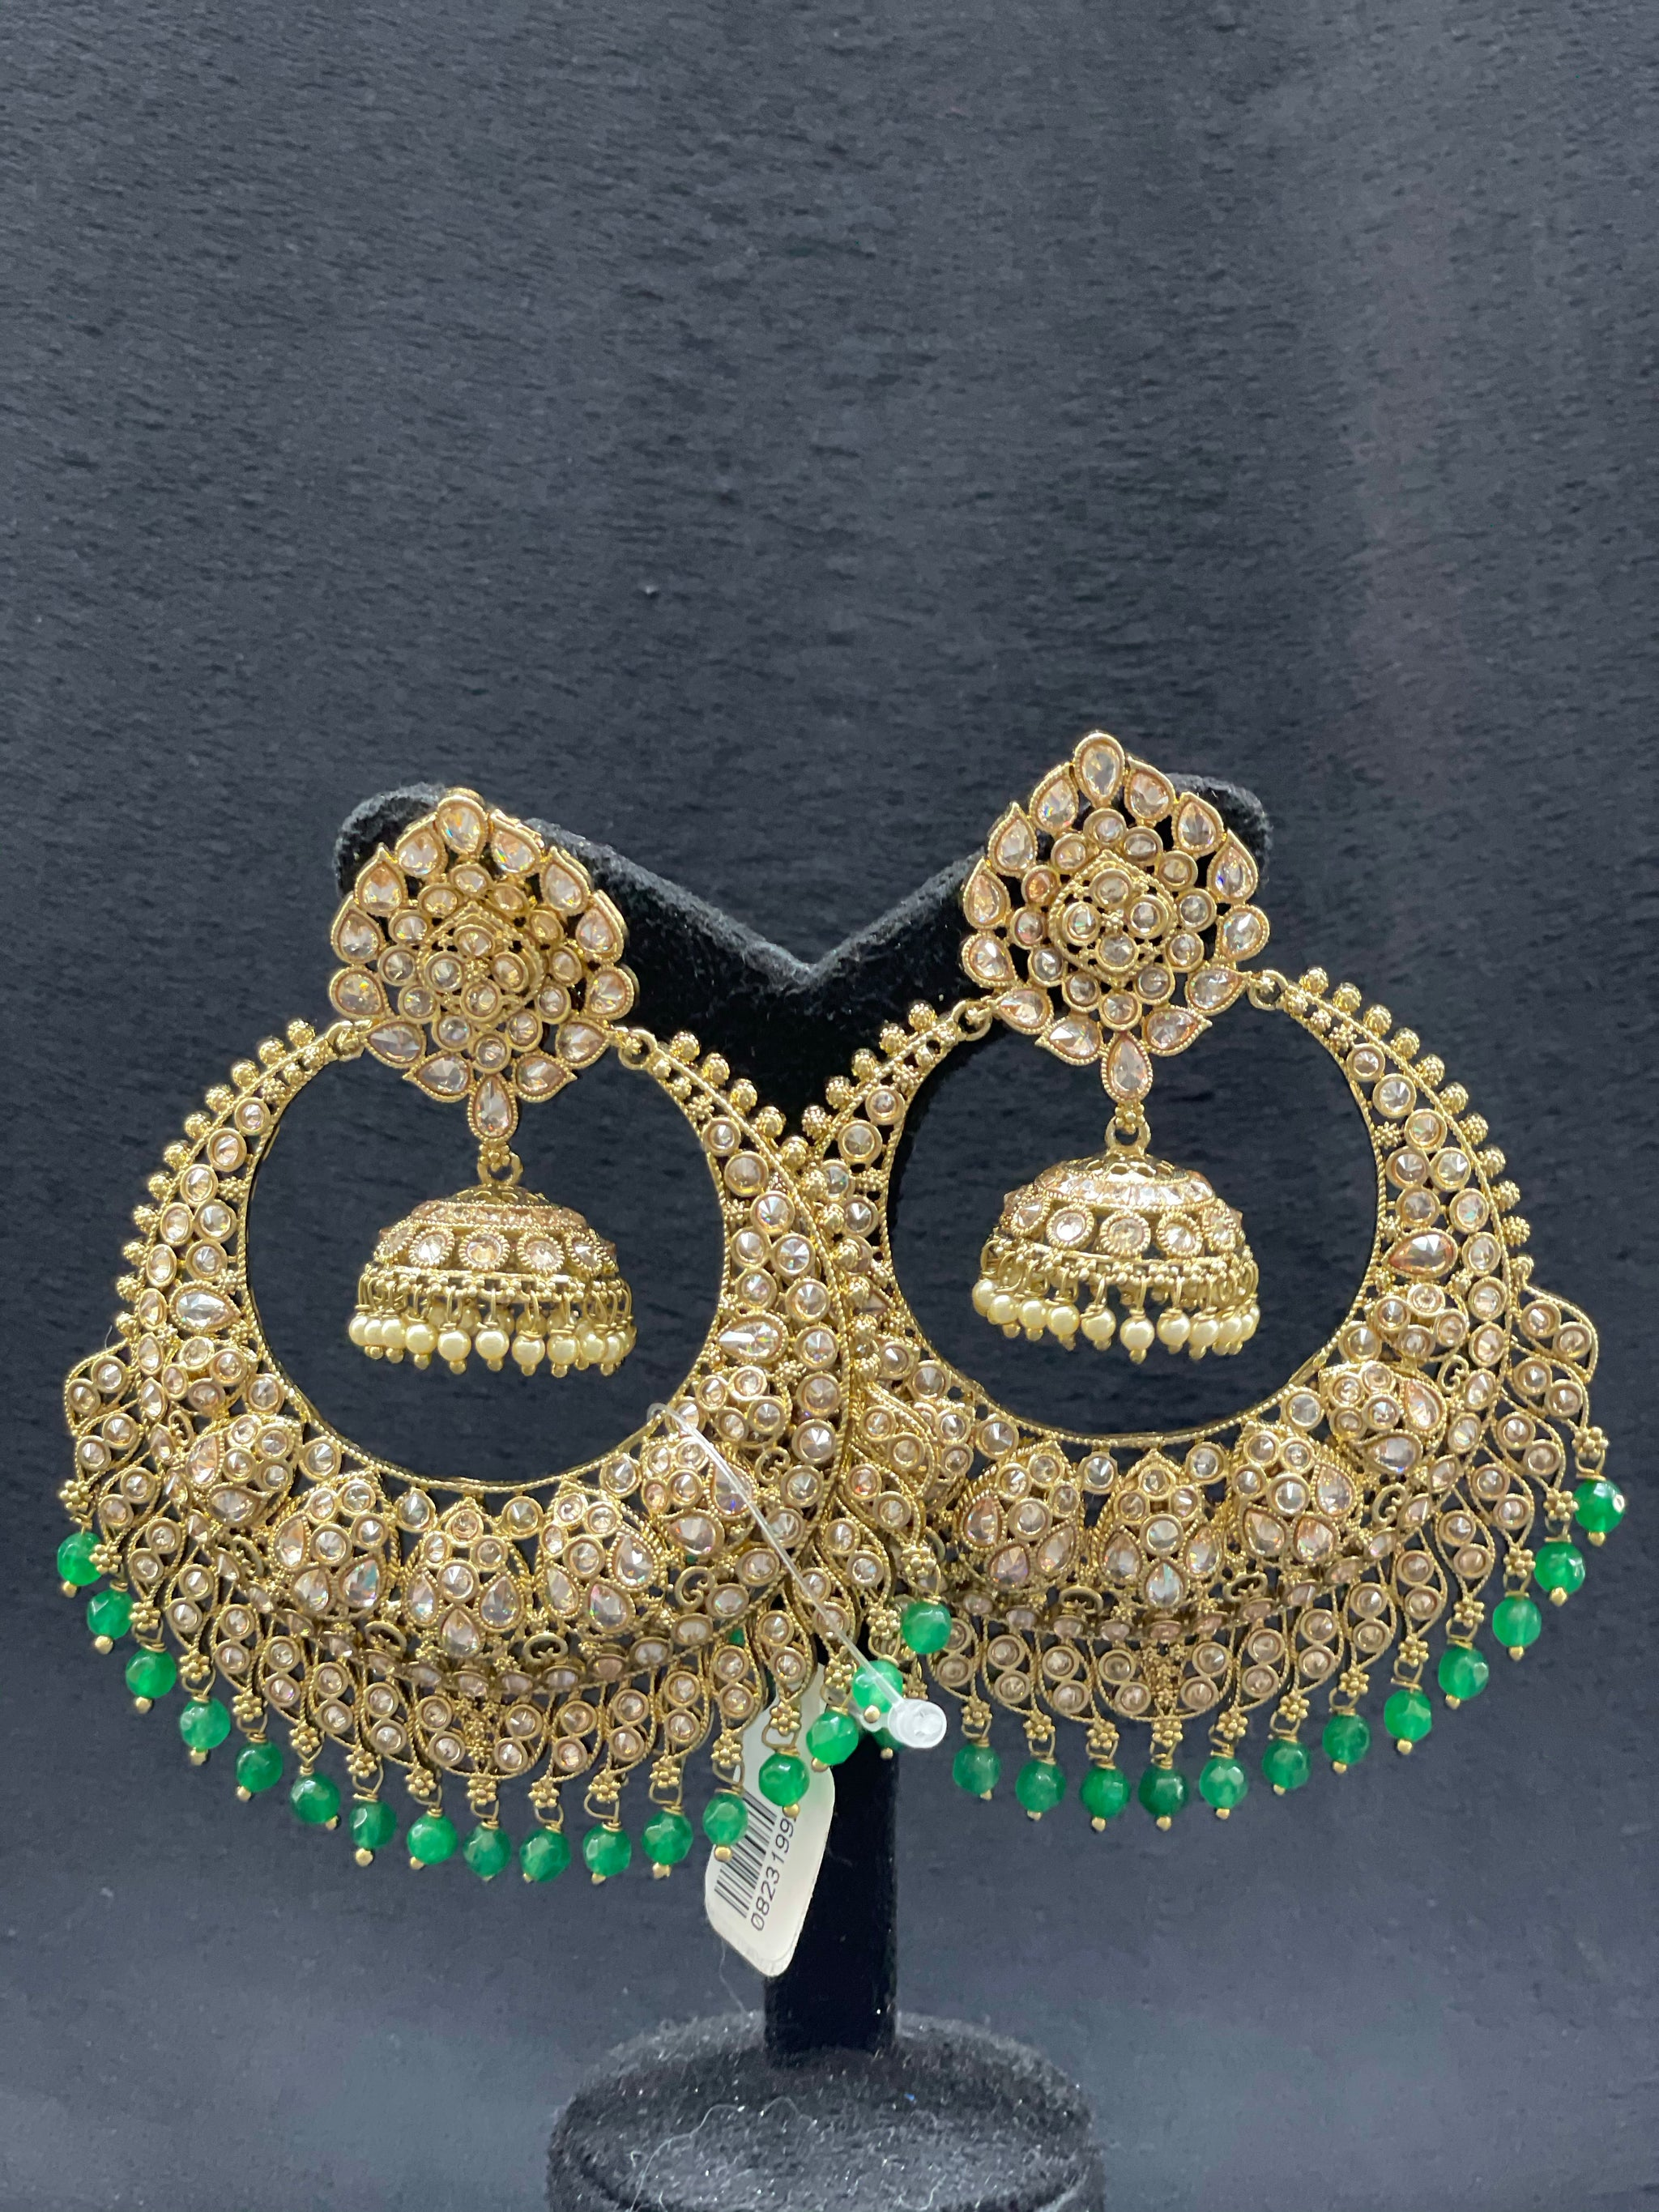 Antique gold layered earring with green beads